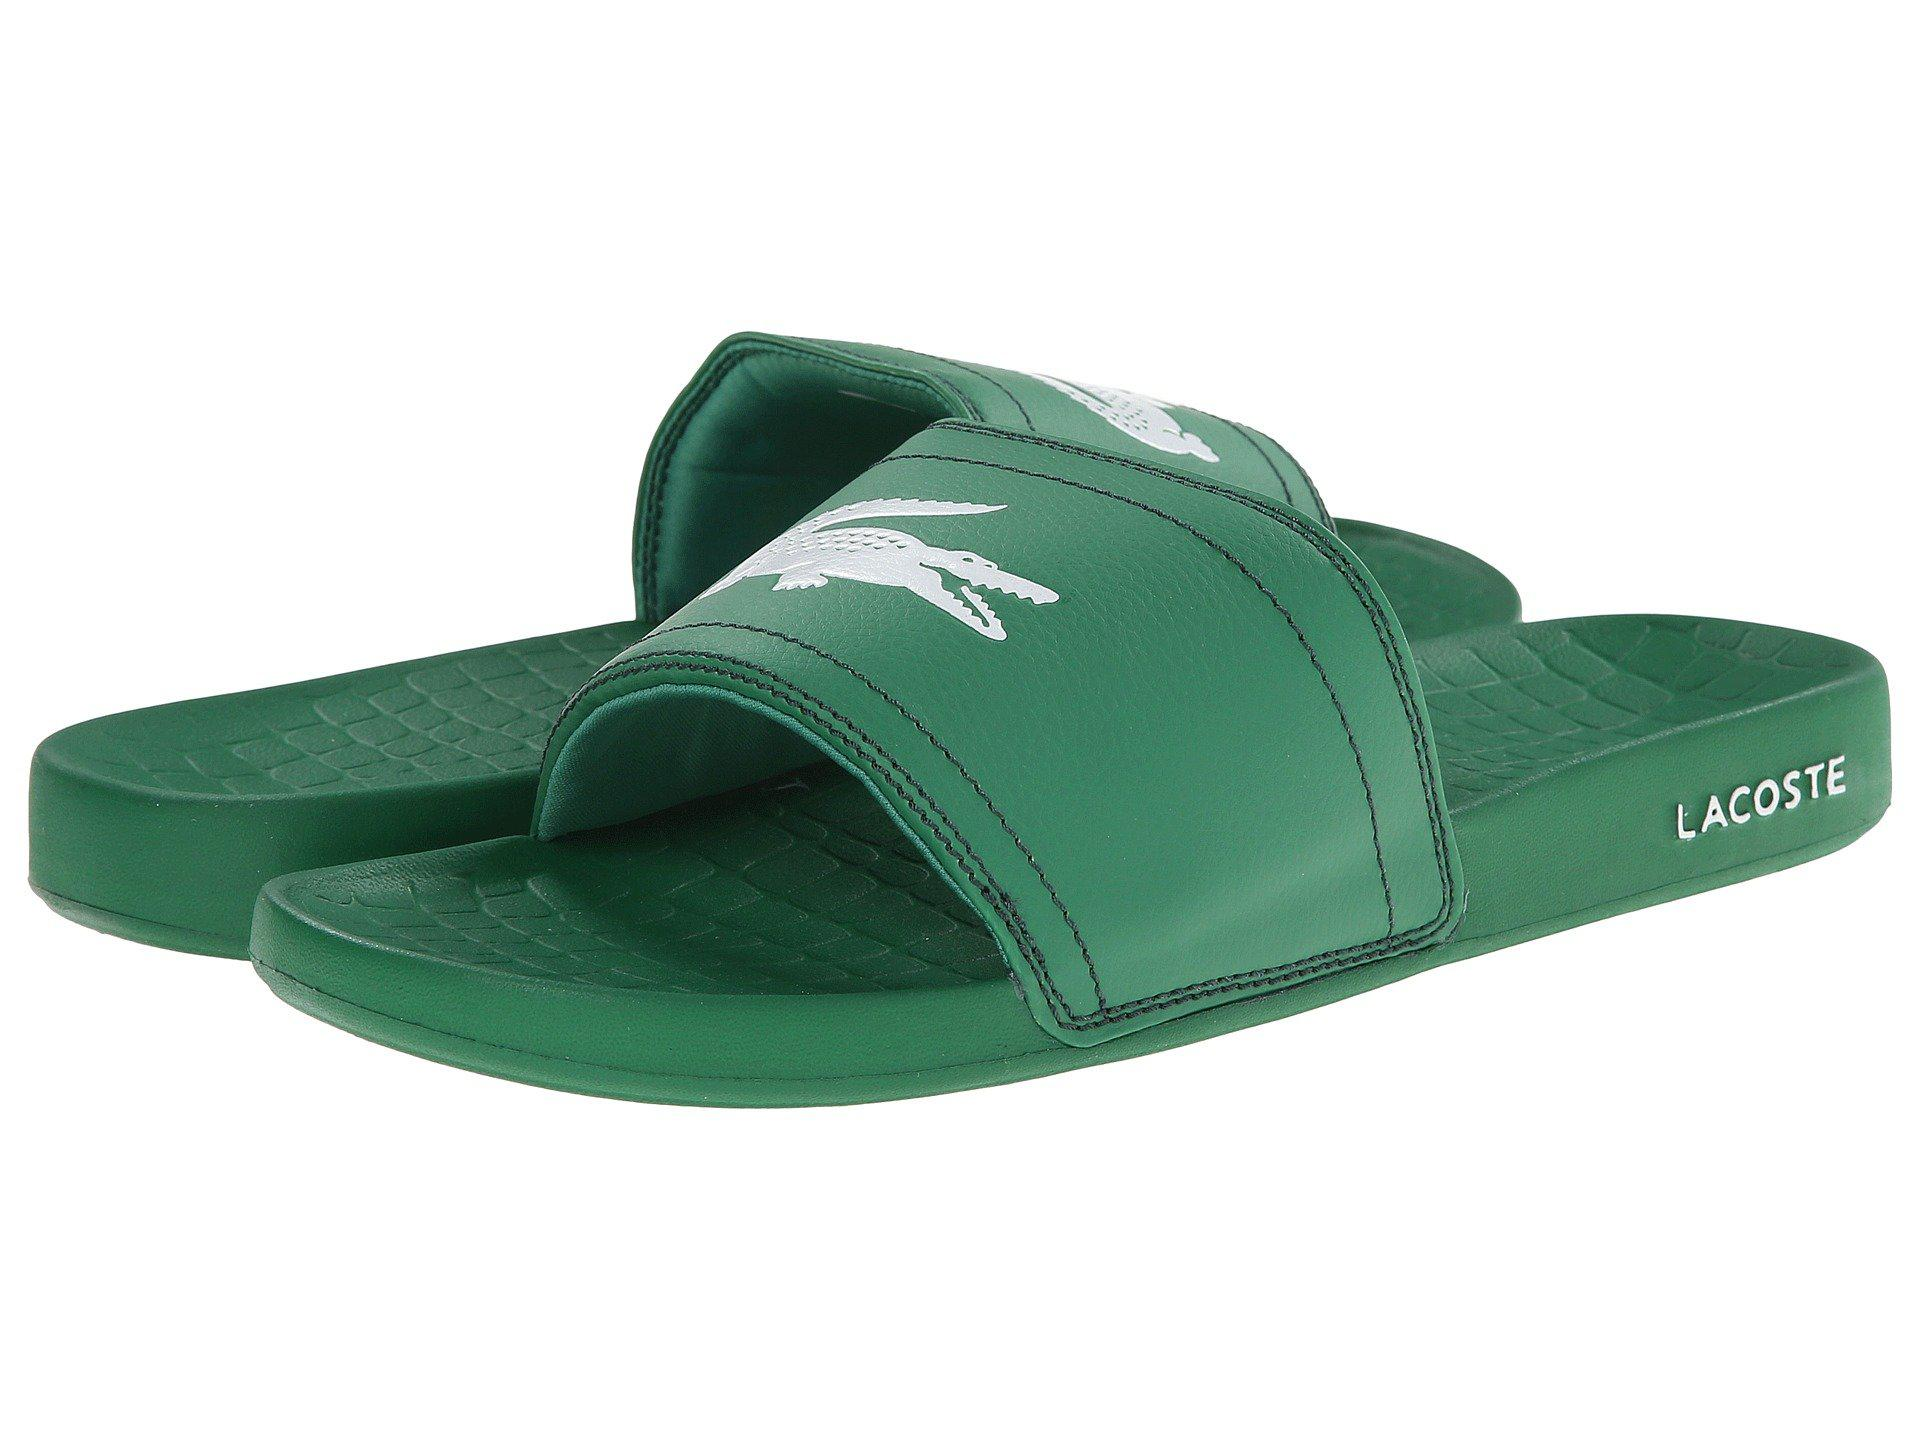 f3a12733e41c5a Lacoste - Fraisier Brd1 (green green) Men s Slide Shoes for Men - Lyst.  View fullscreen